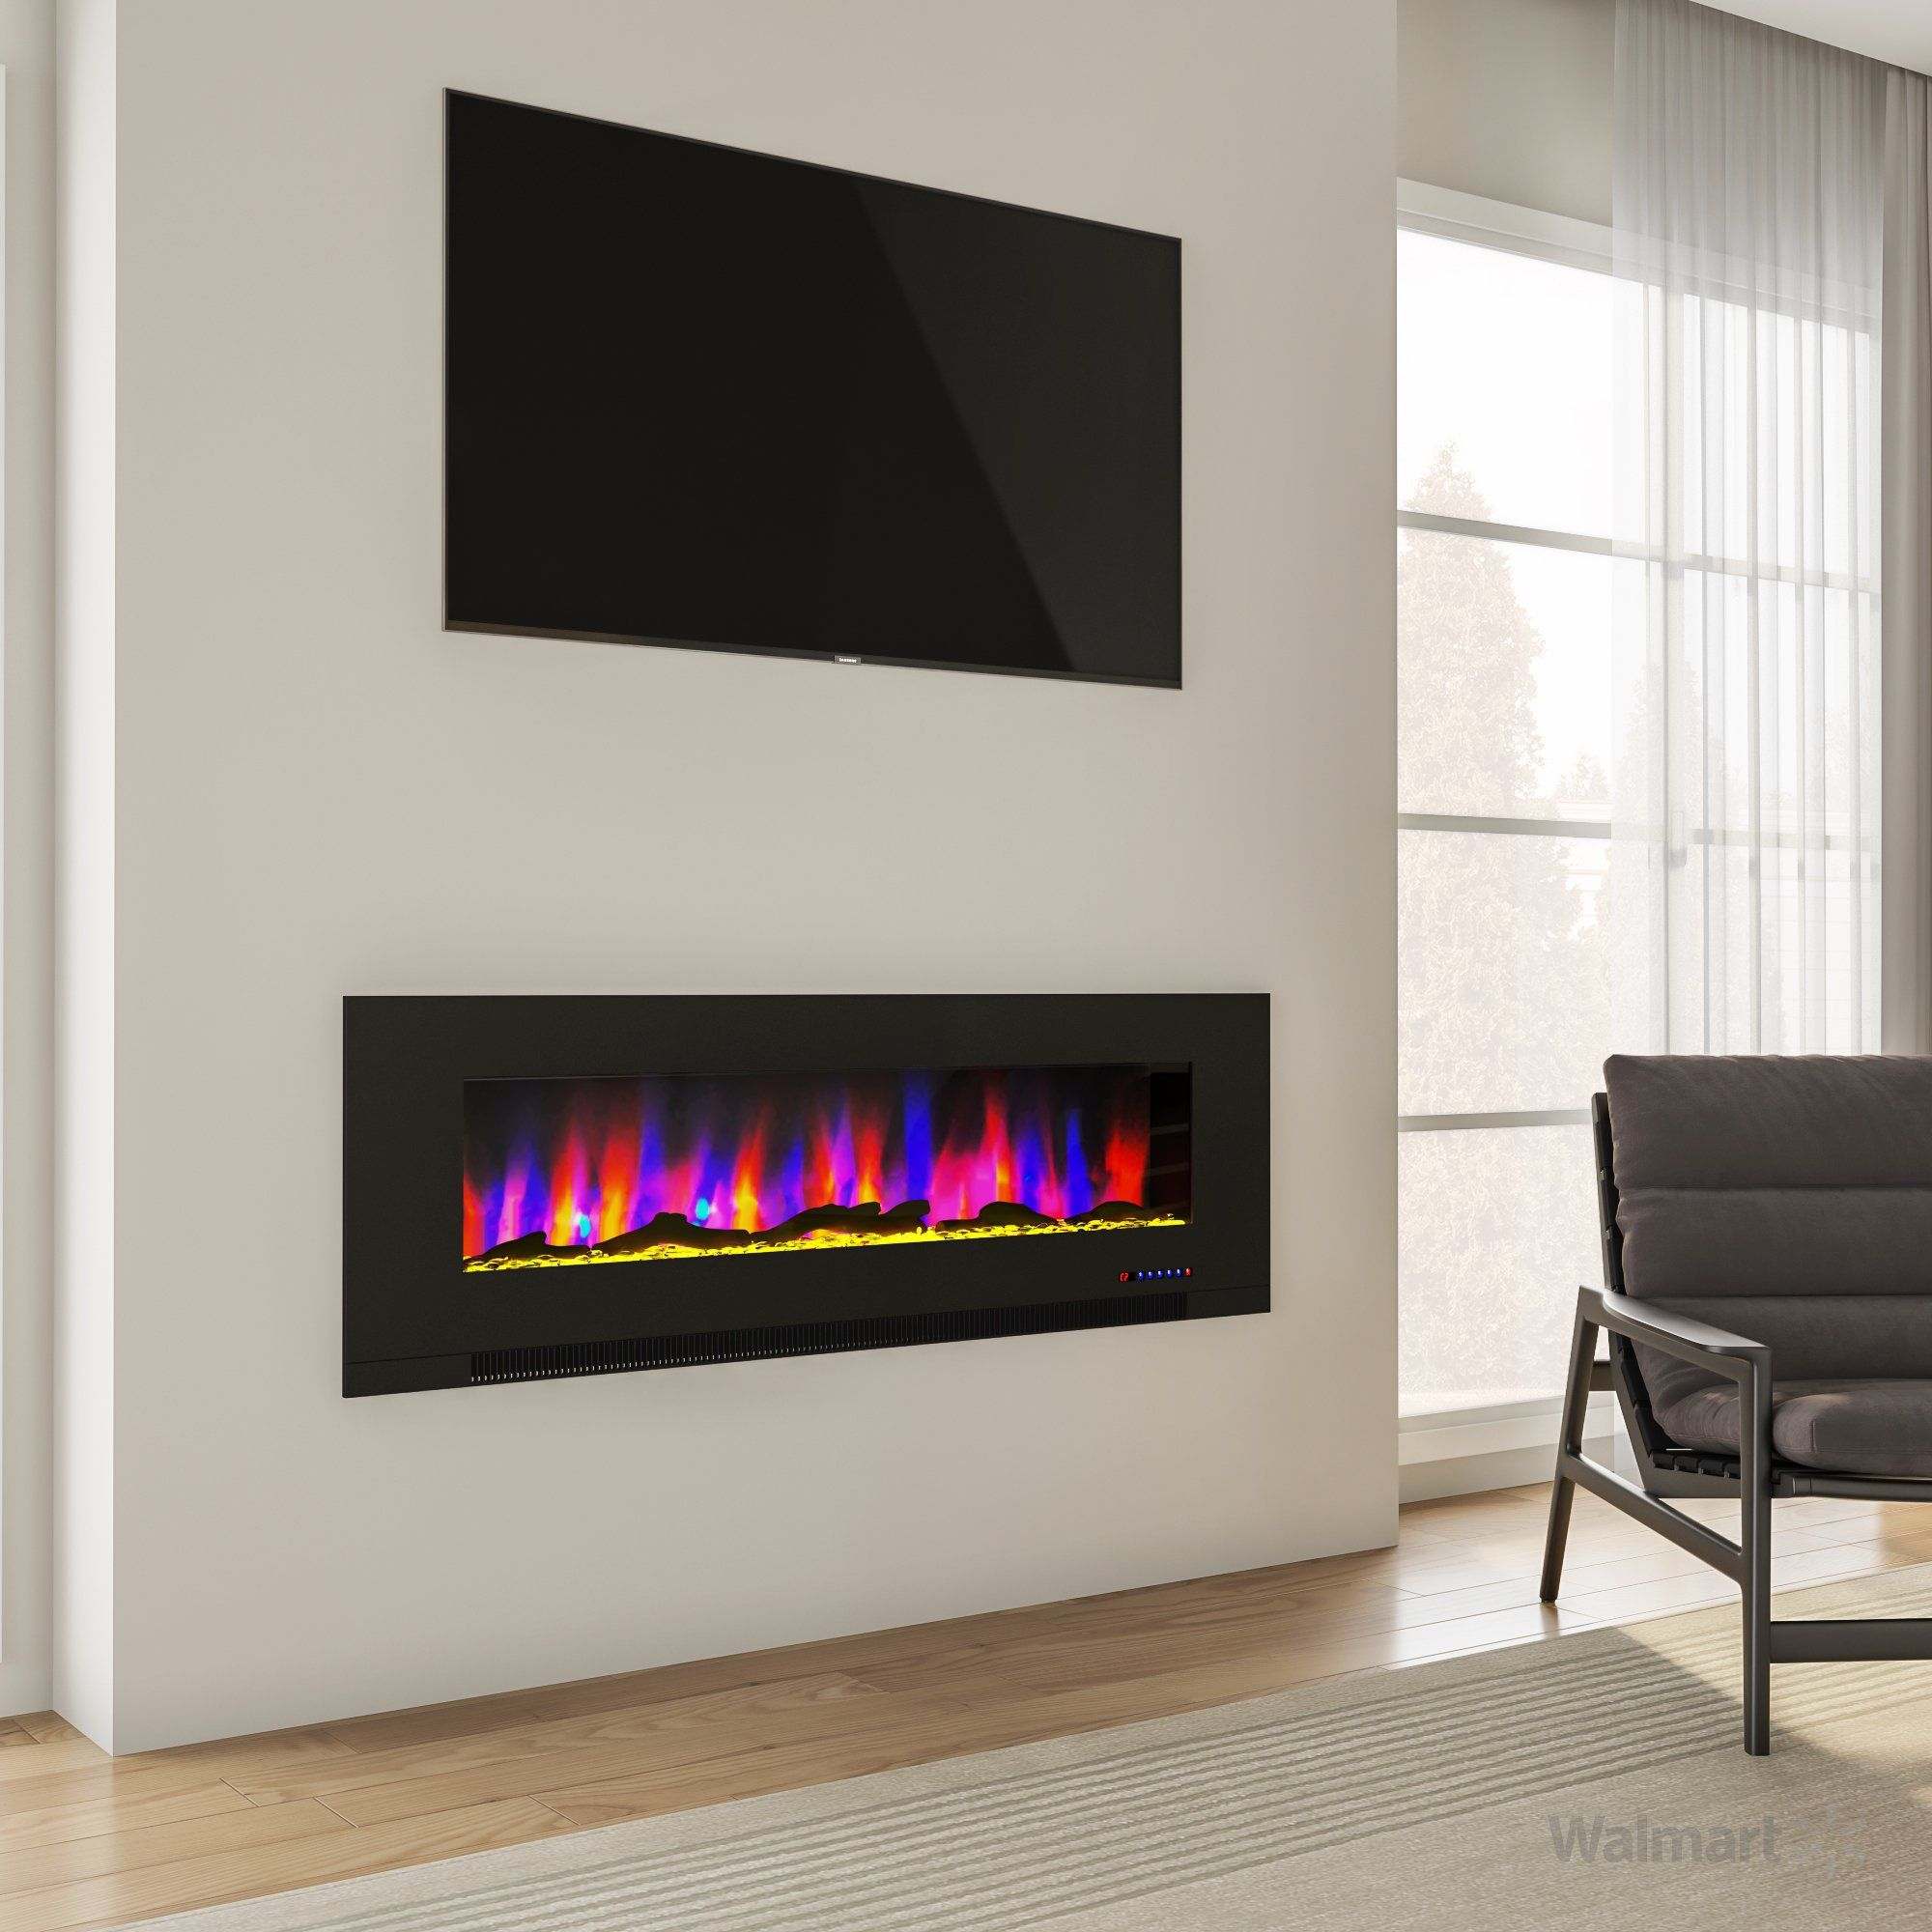 Perfect Electric Insert To Replace Your Gas Log Set Or A Wood Fireplace Fo Realistic Electric Fireplace Stone Electric Fireplace Wall Mount Electric Fireplace